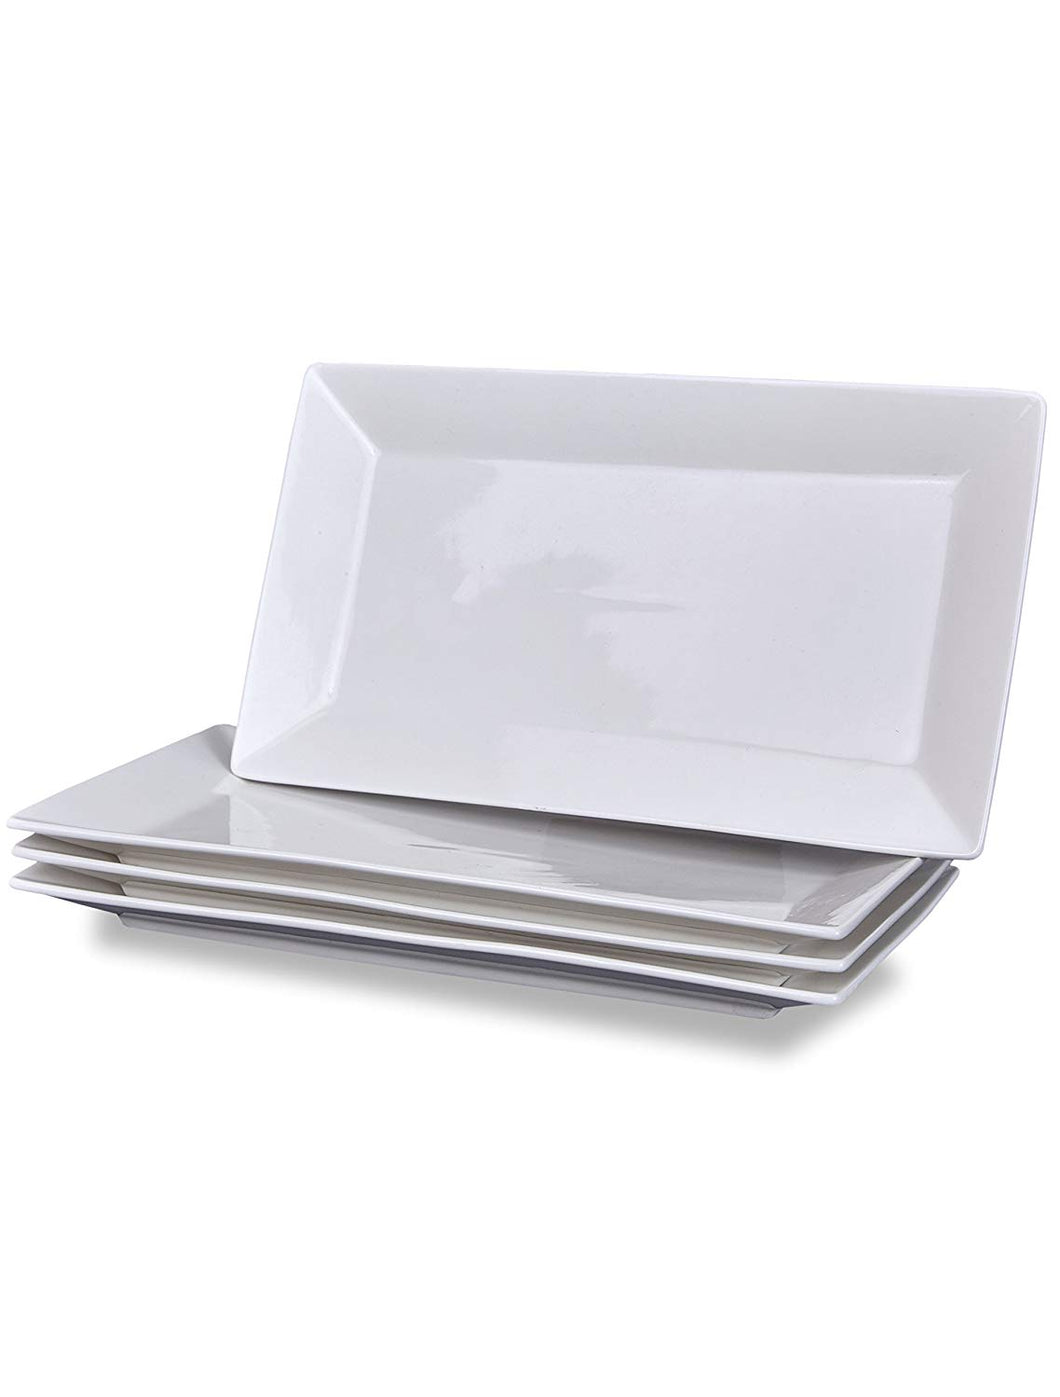 Klikel 4 Serving Platters - Classic White Plate - Serving Trays for Parties - Microwave and Dishwasher Safe - 6.5 x 14 Inch